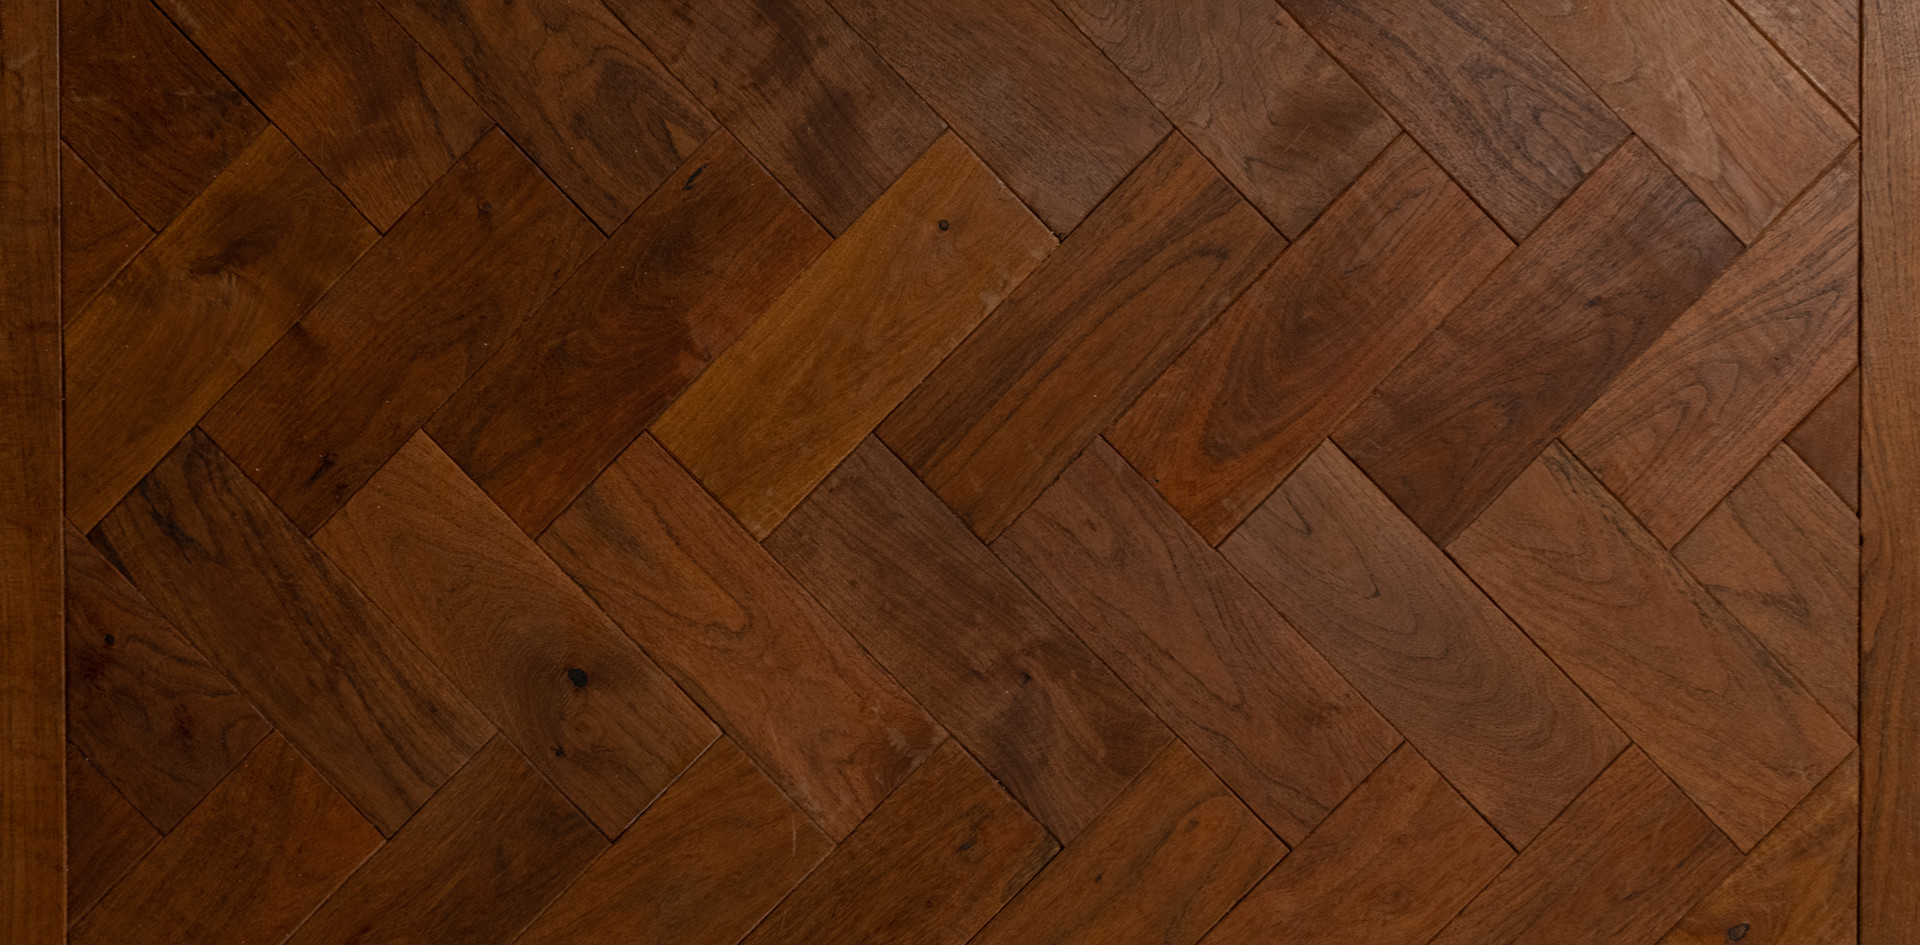 herringbone hardwood flooring pattern